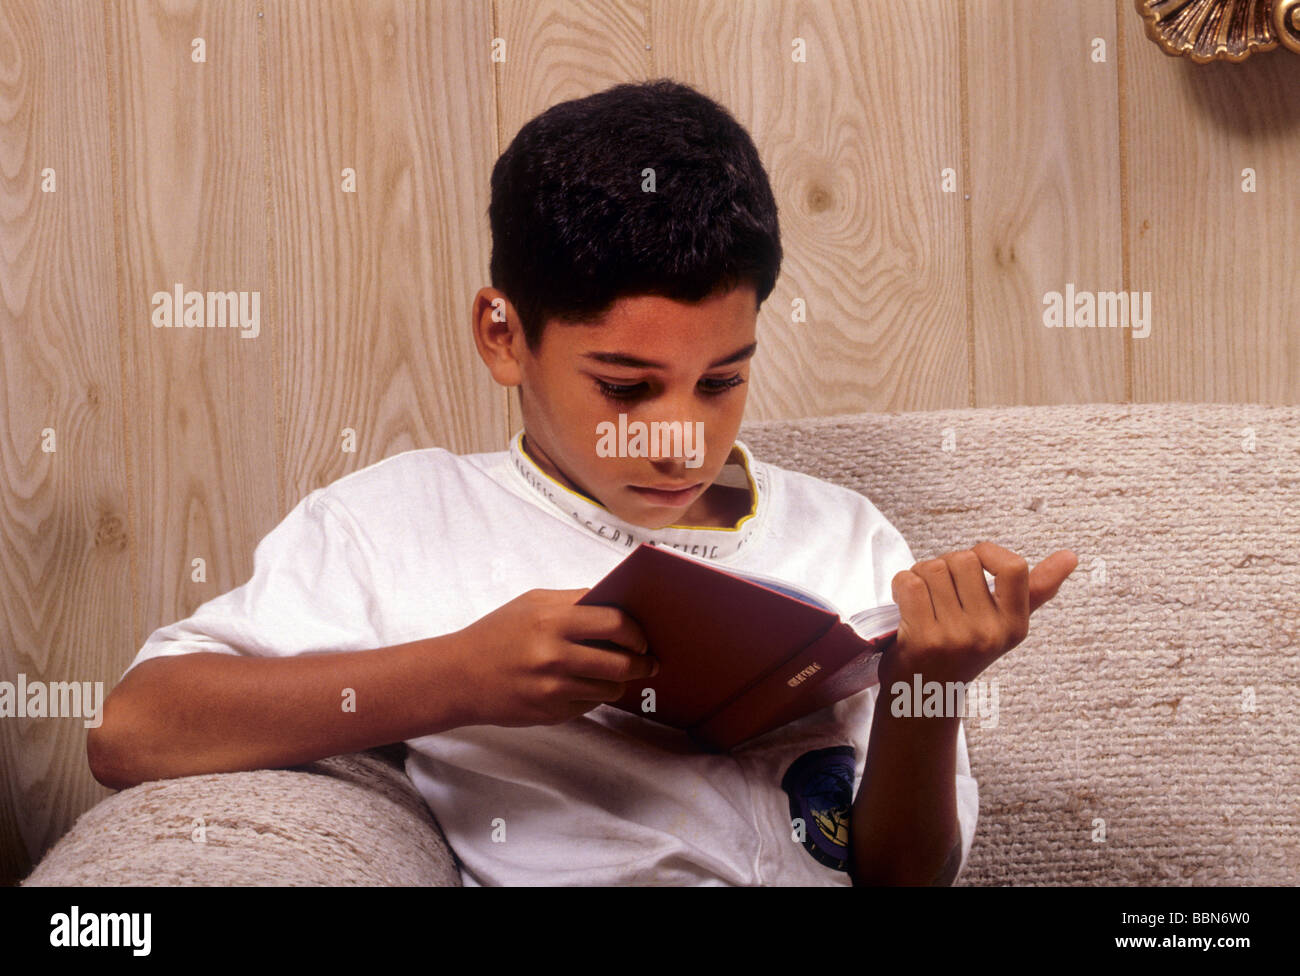 Hispanic Latin Boy Read Book Engross Concentrate Attention Deep Serious    Stock Image